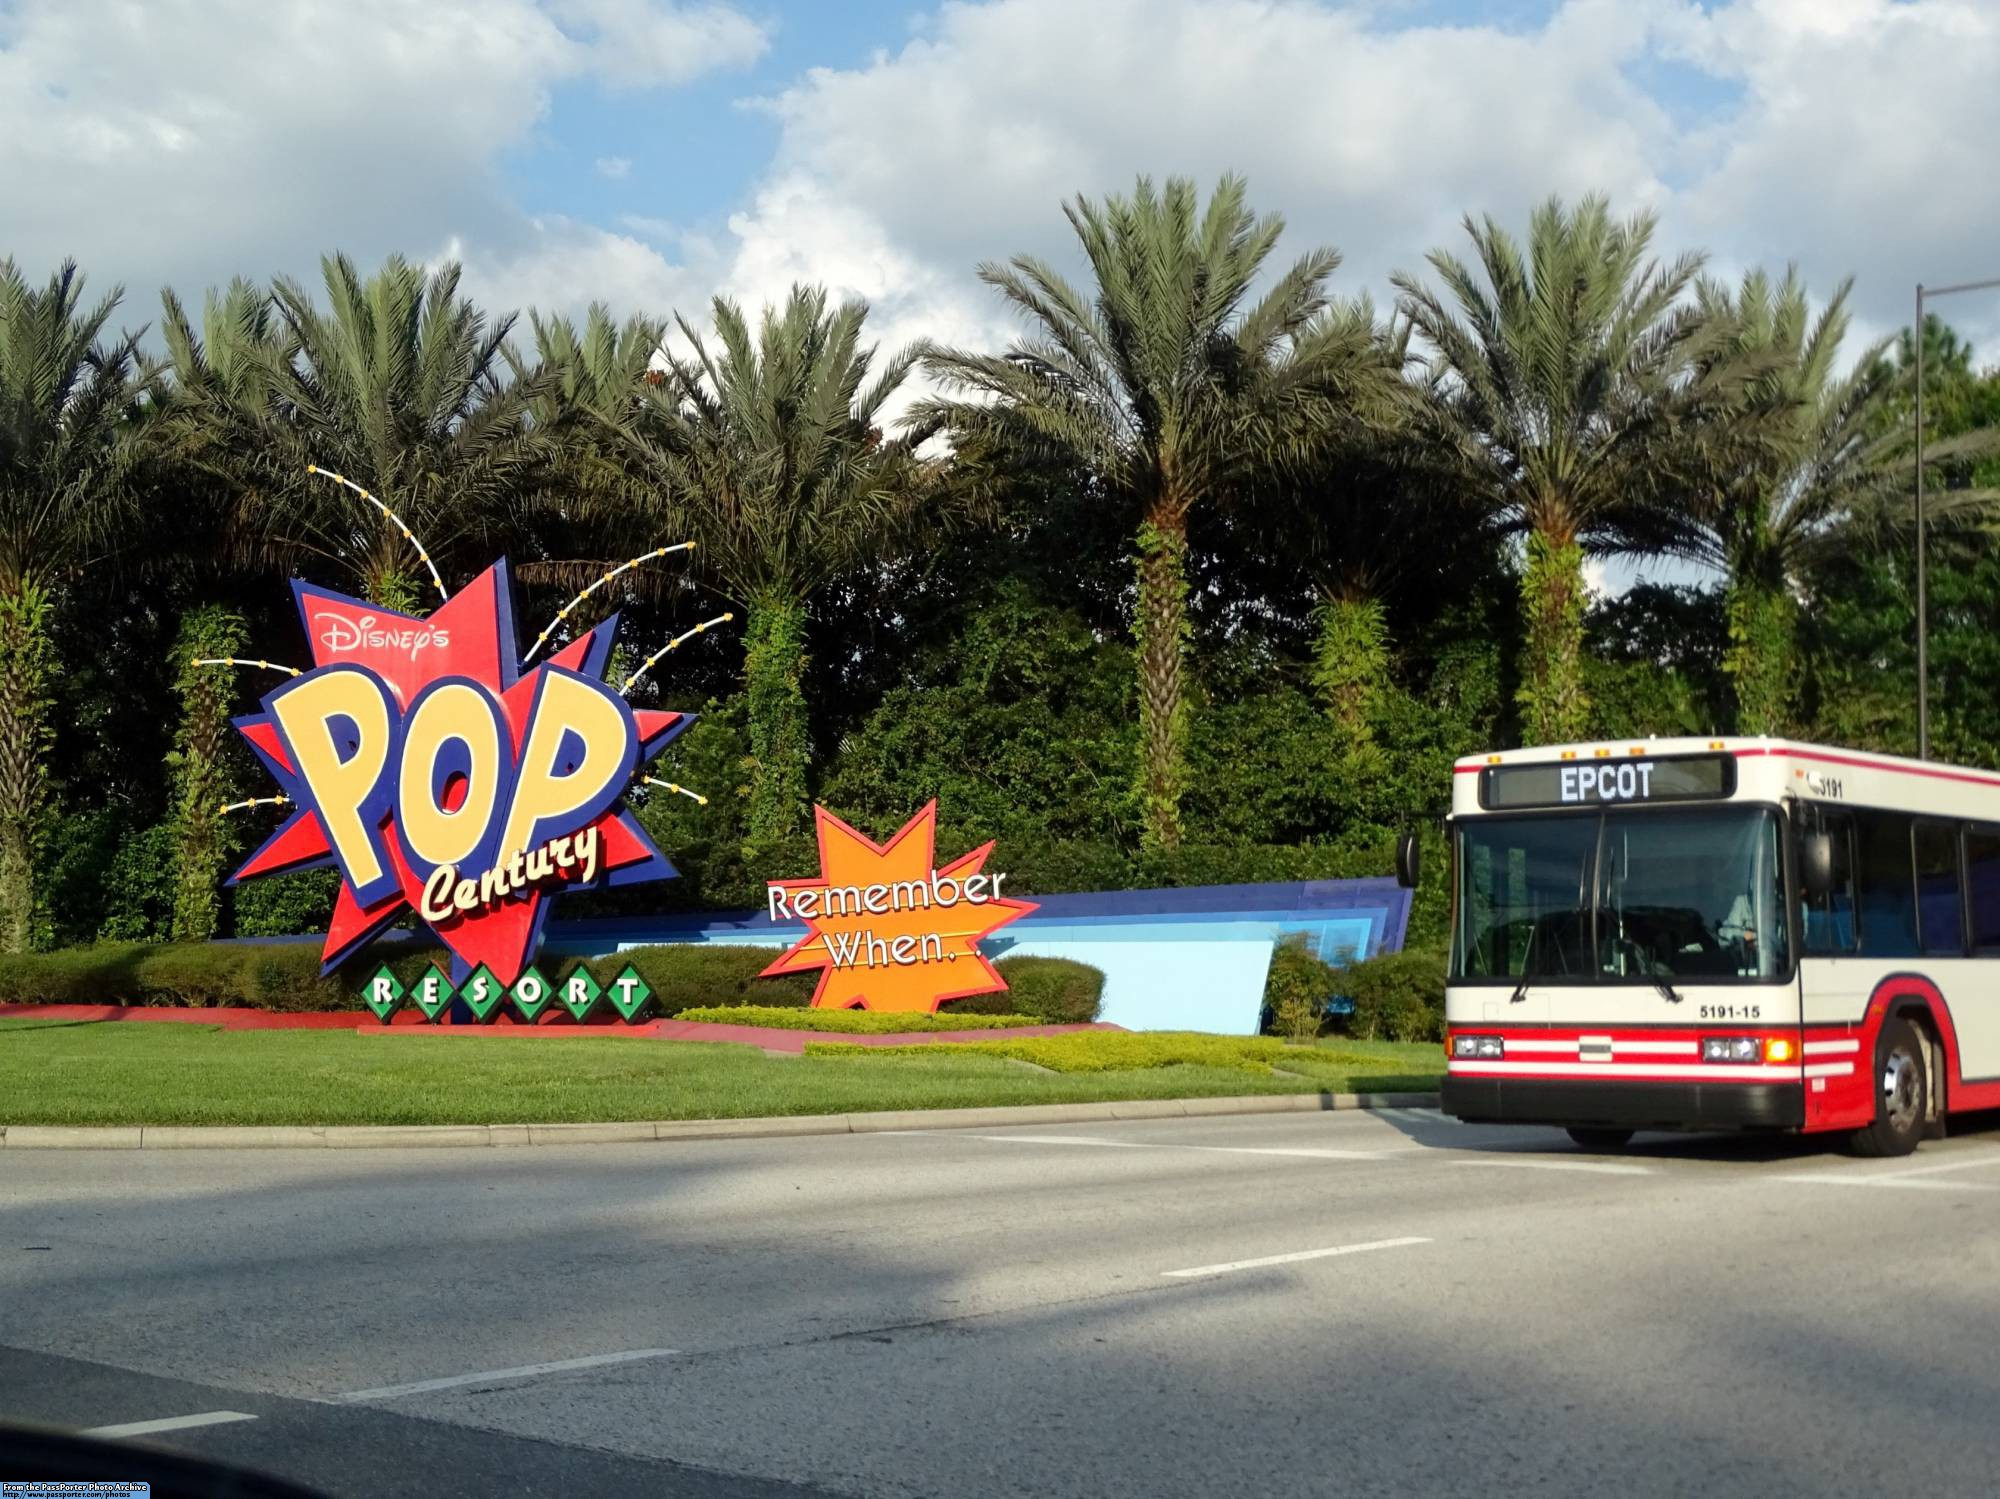 Enjoy a stay at Disney's Pop Century Resort | PassPorter.com